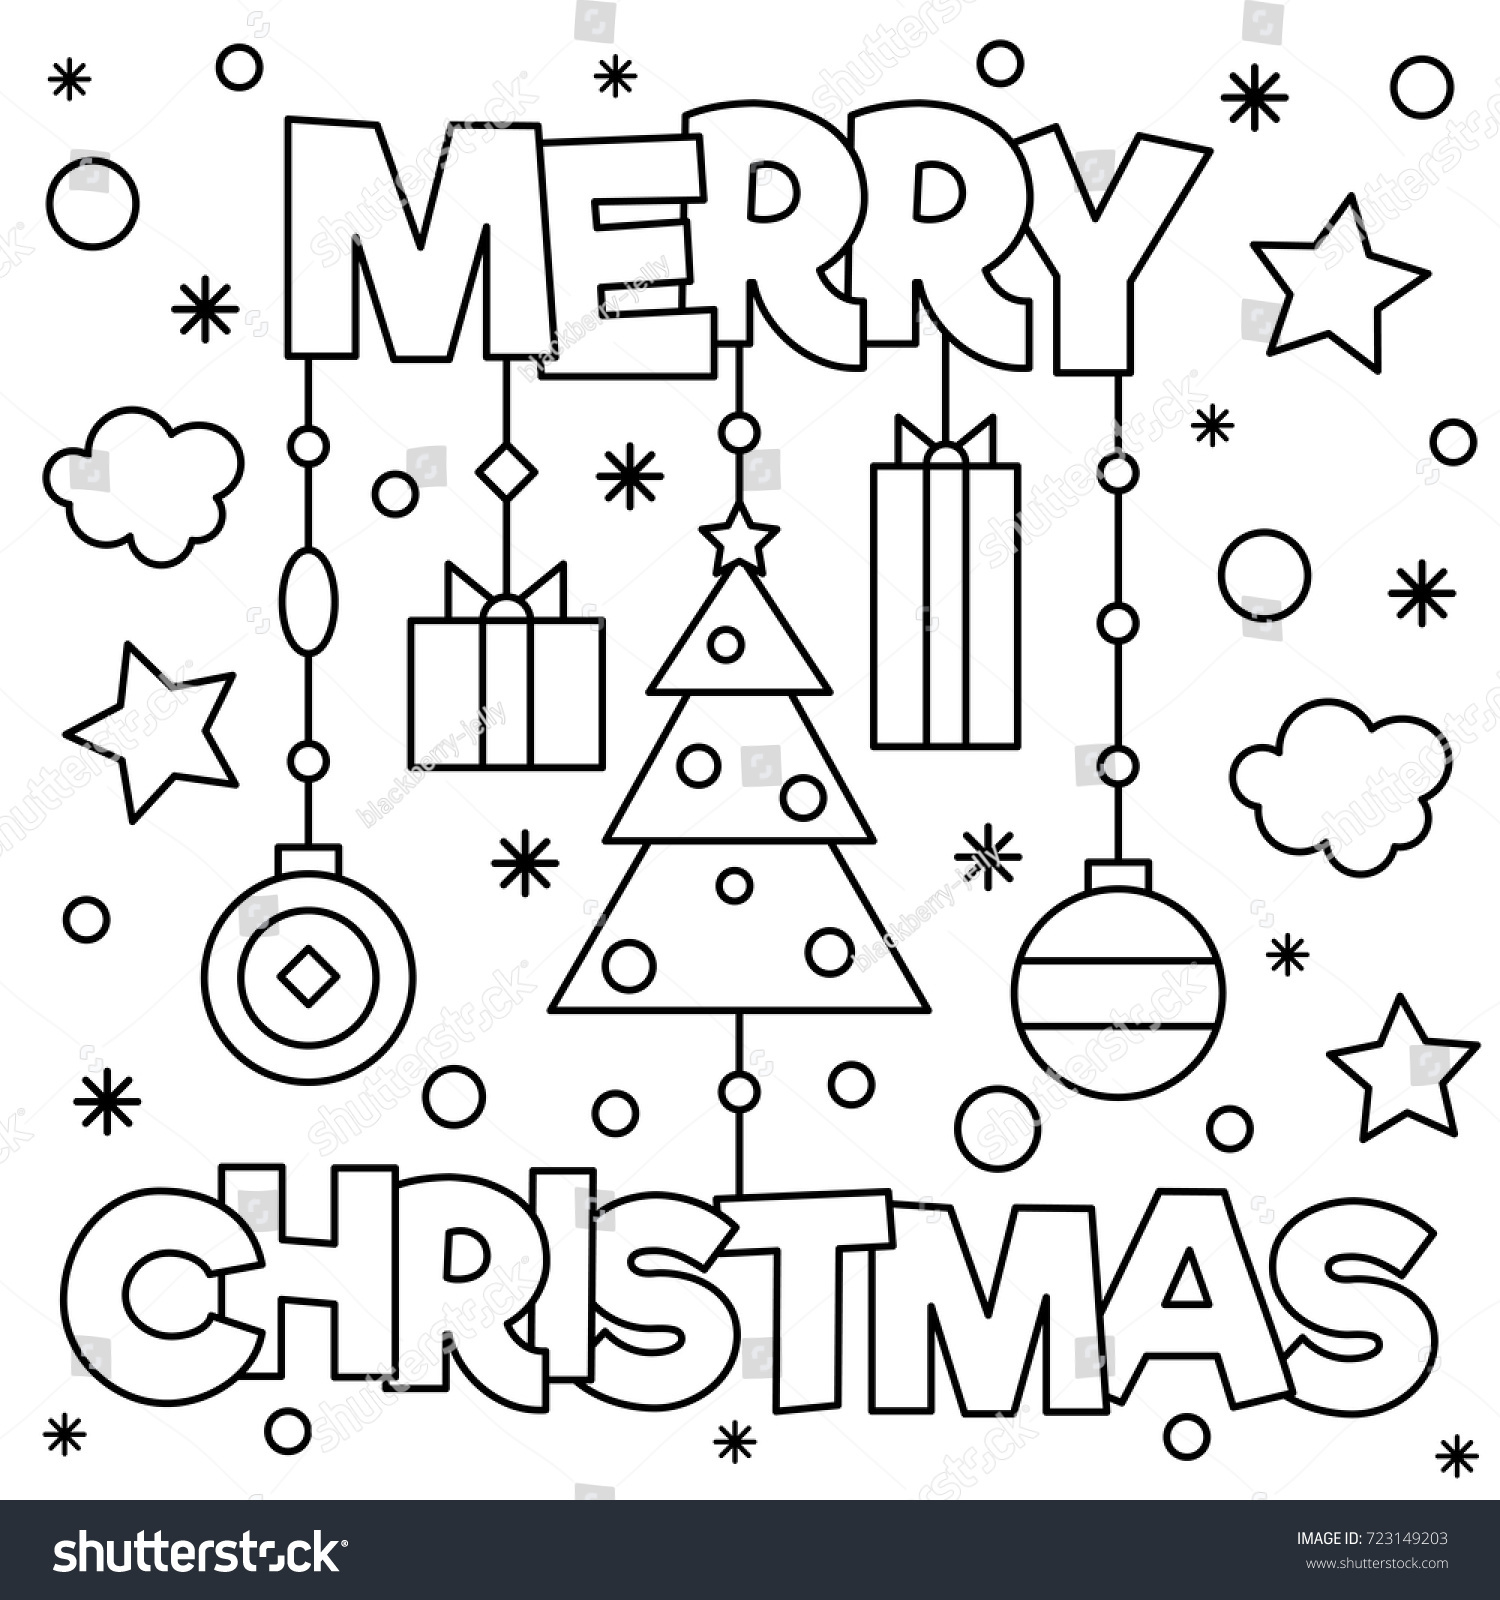 Coloring Pages Of Merry Christmas With Page Vector Illustration Stock